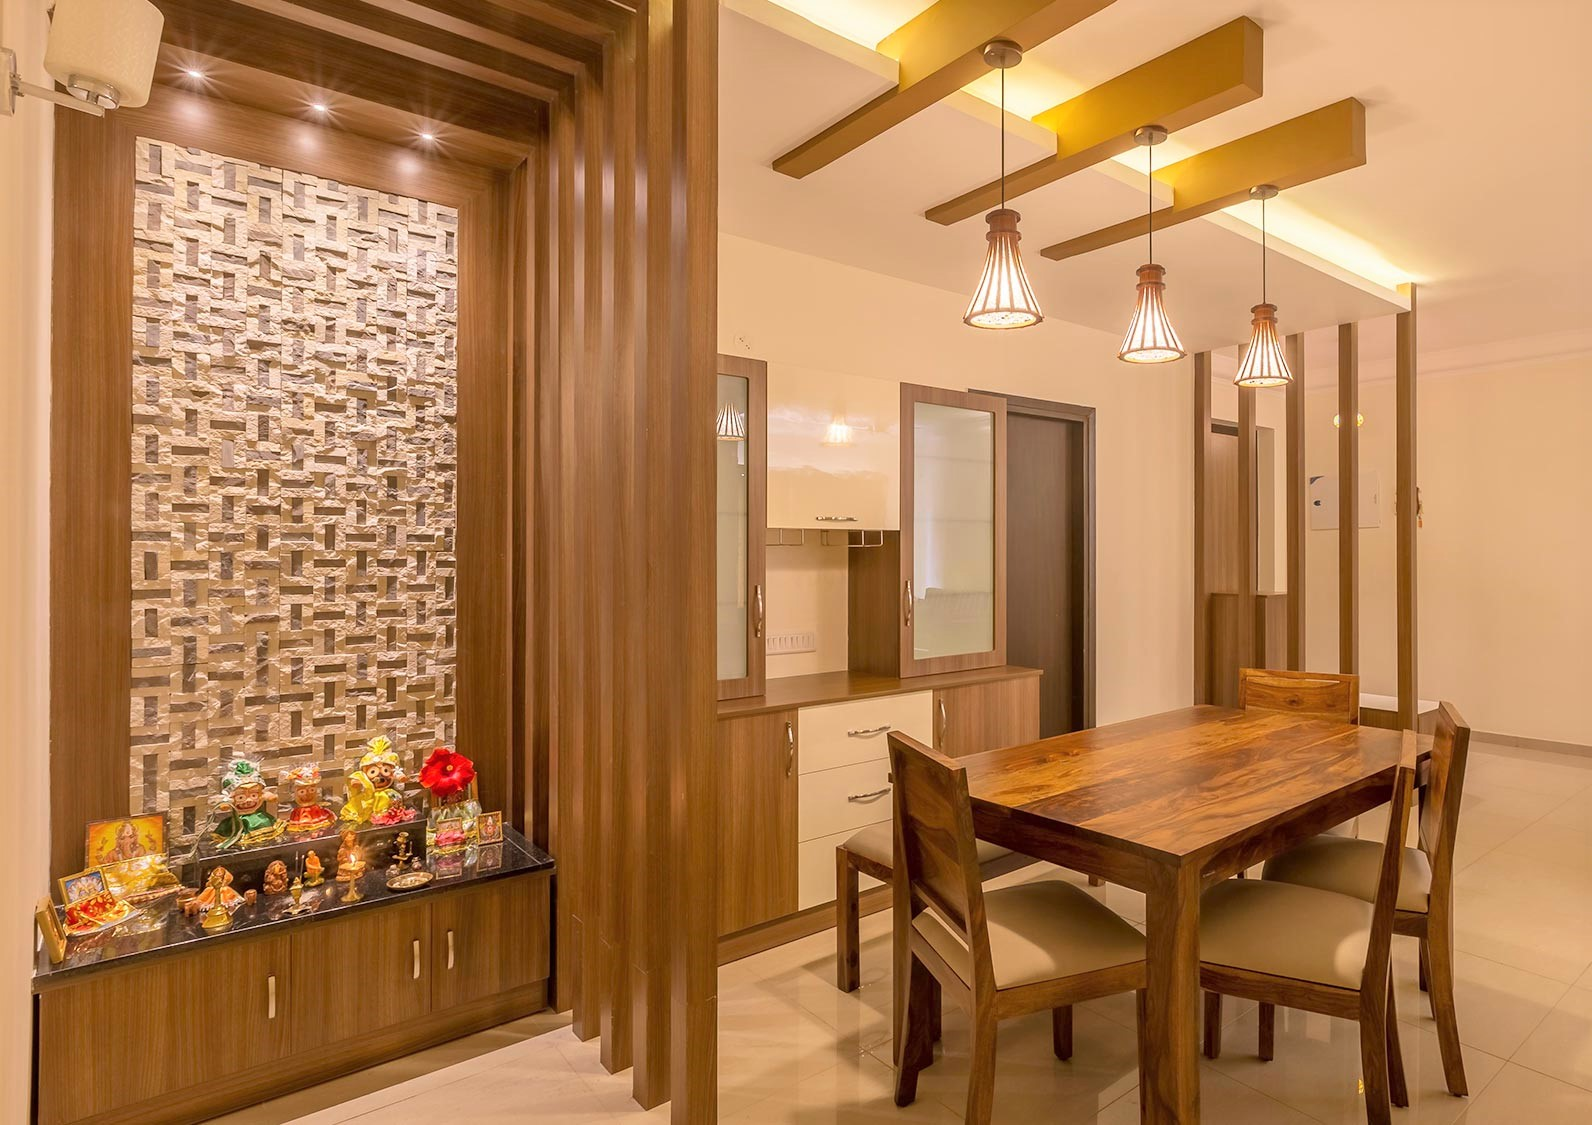 9 Small Mandir Design Ideas for Indian Homes (Wall ...